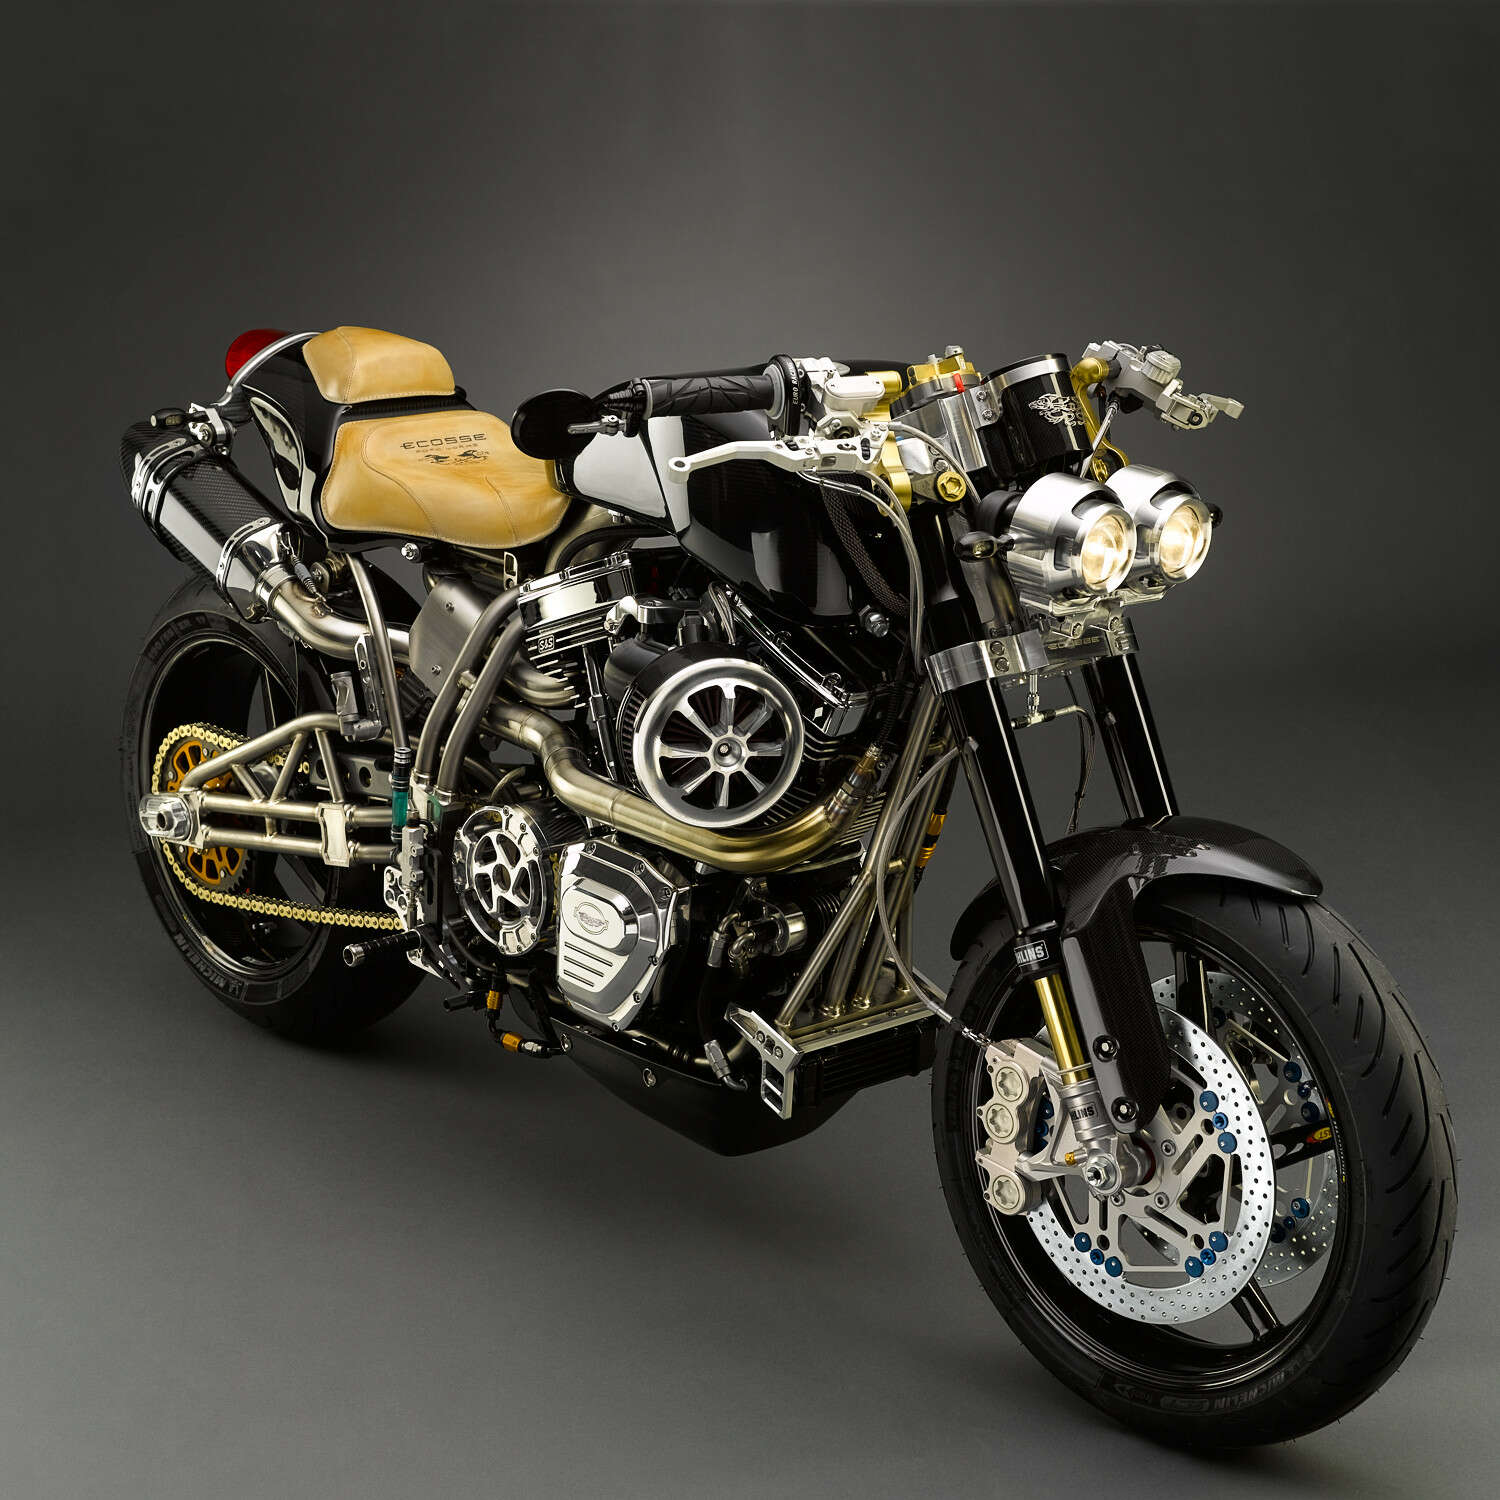 25 Most Expensive New Motorcycles In The World